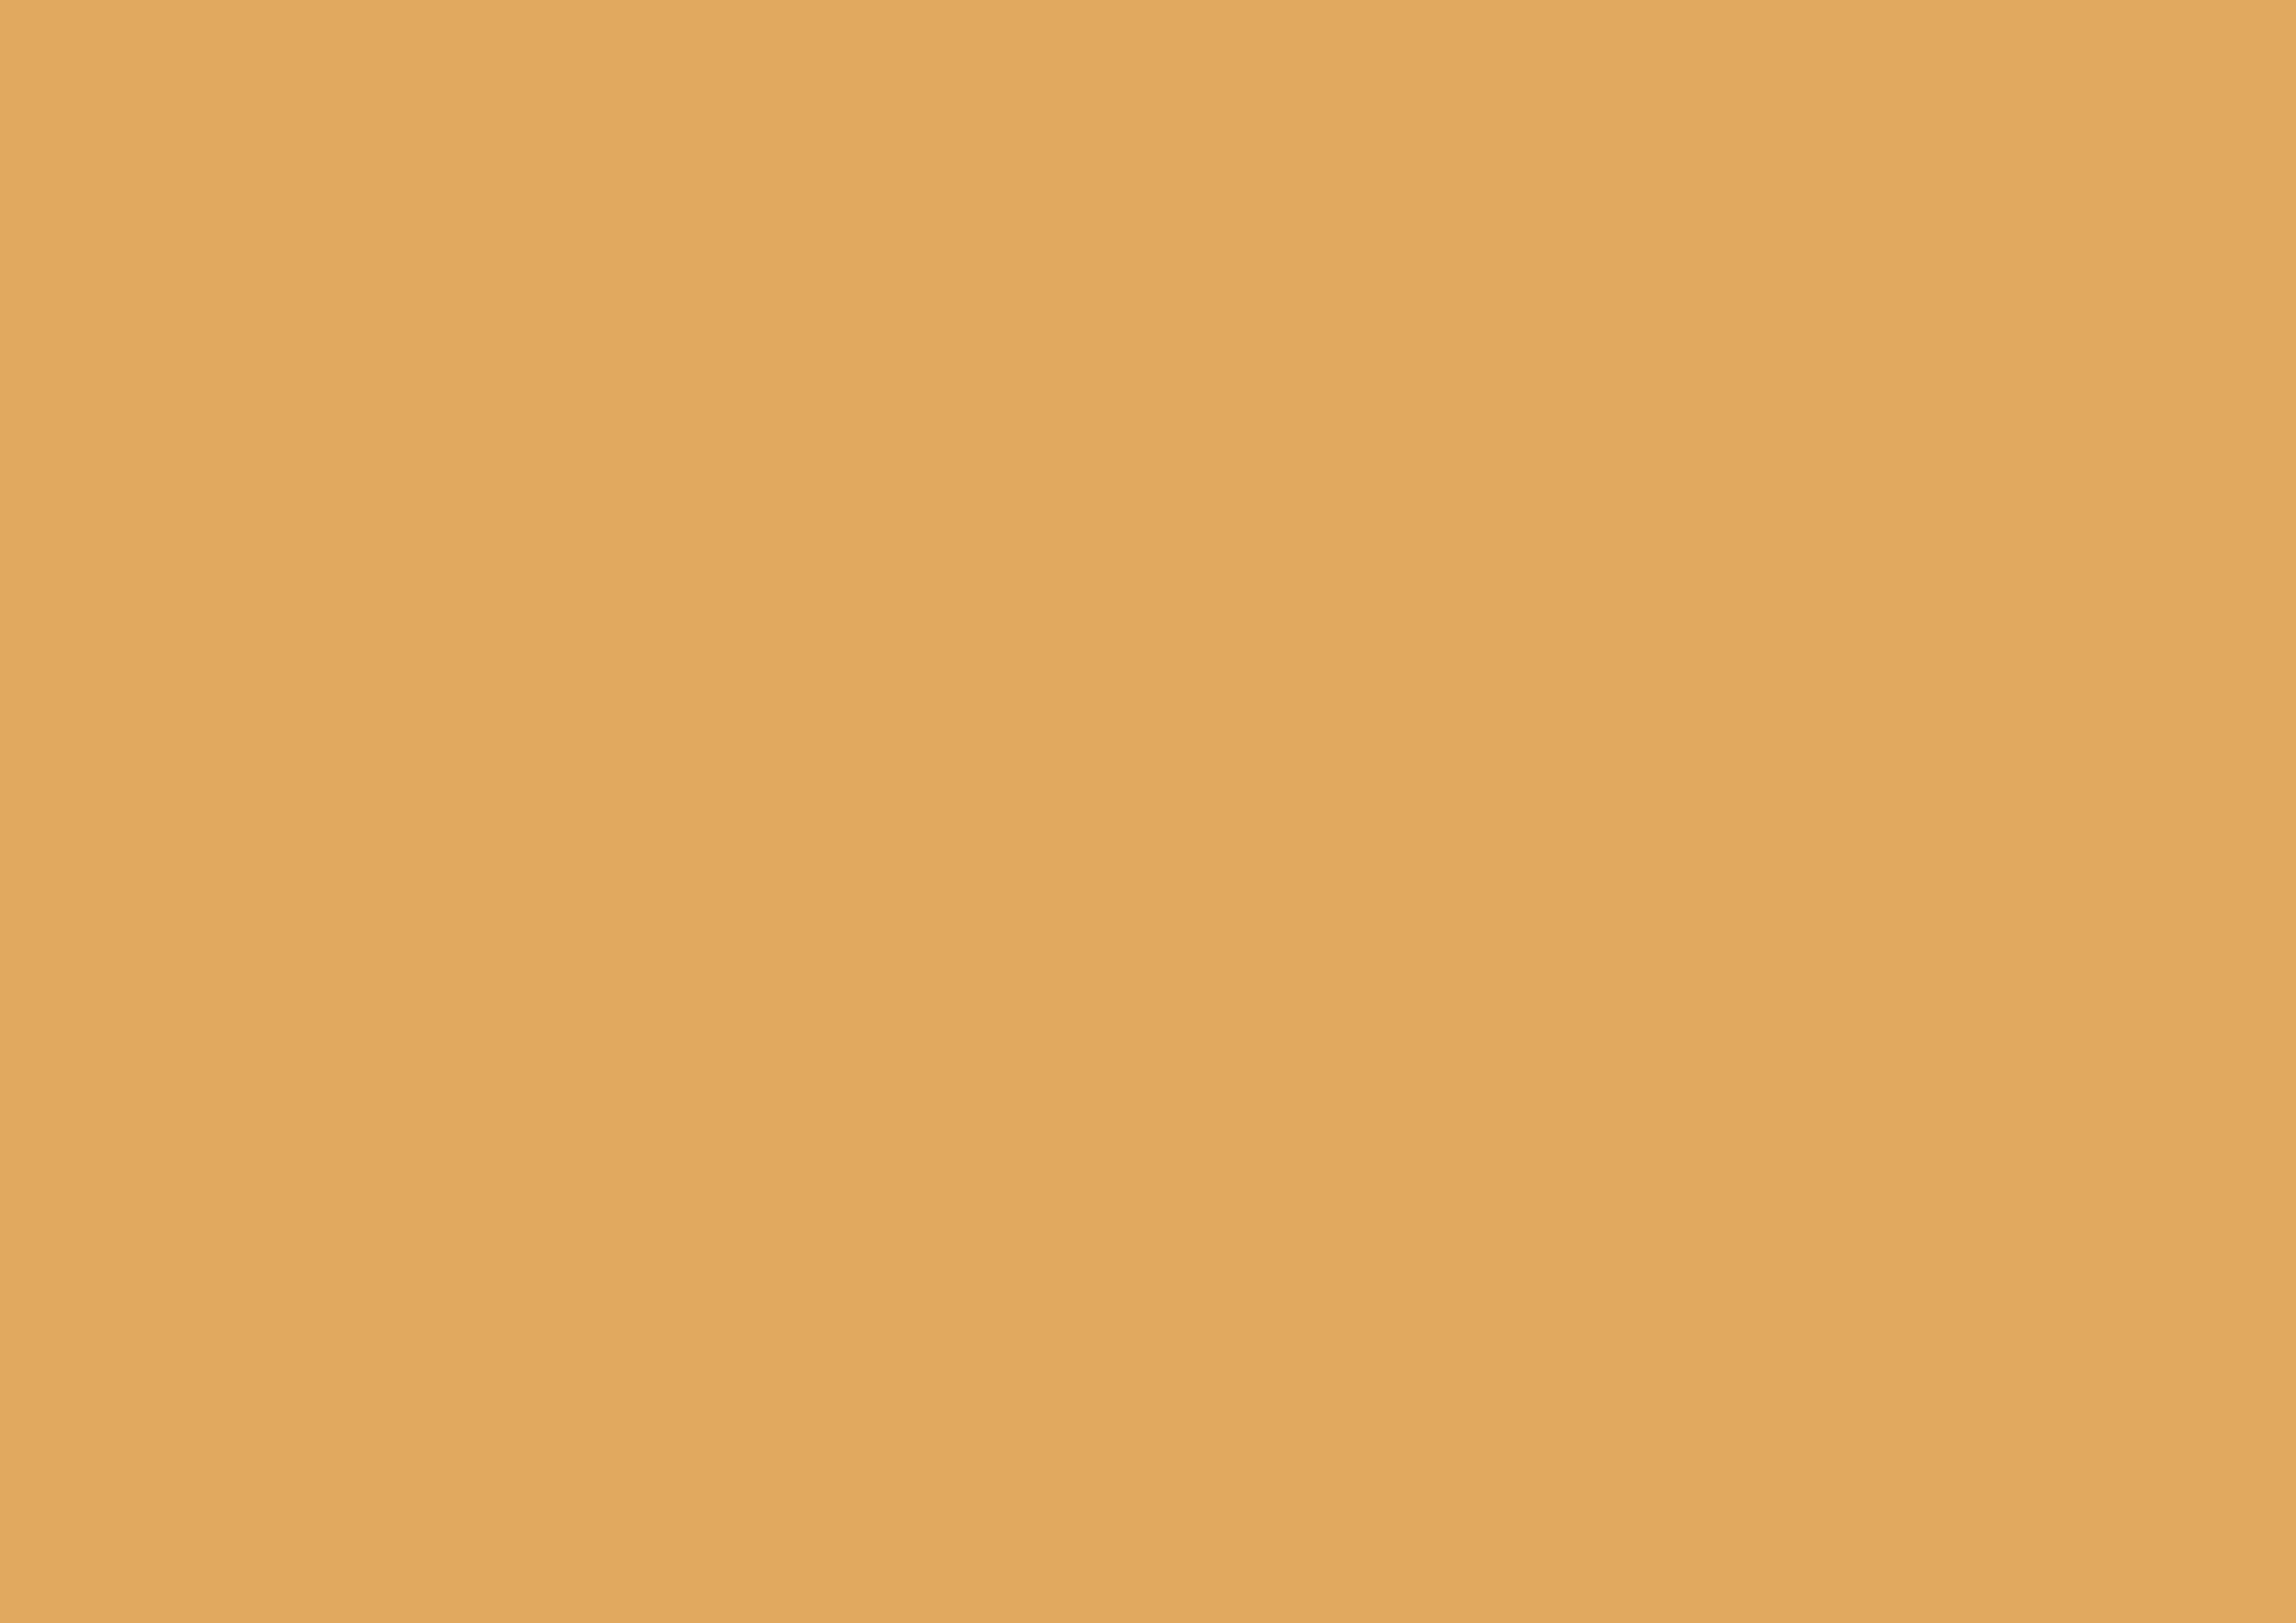 3508x2480 Earth Yellow Solid Color Background